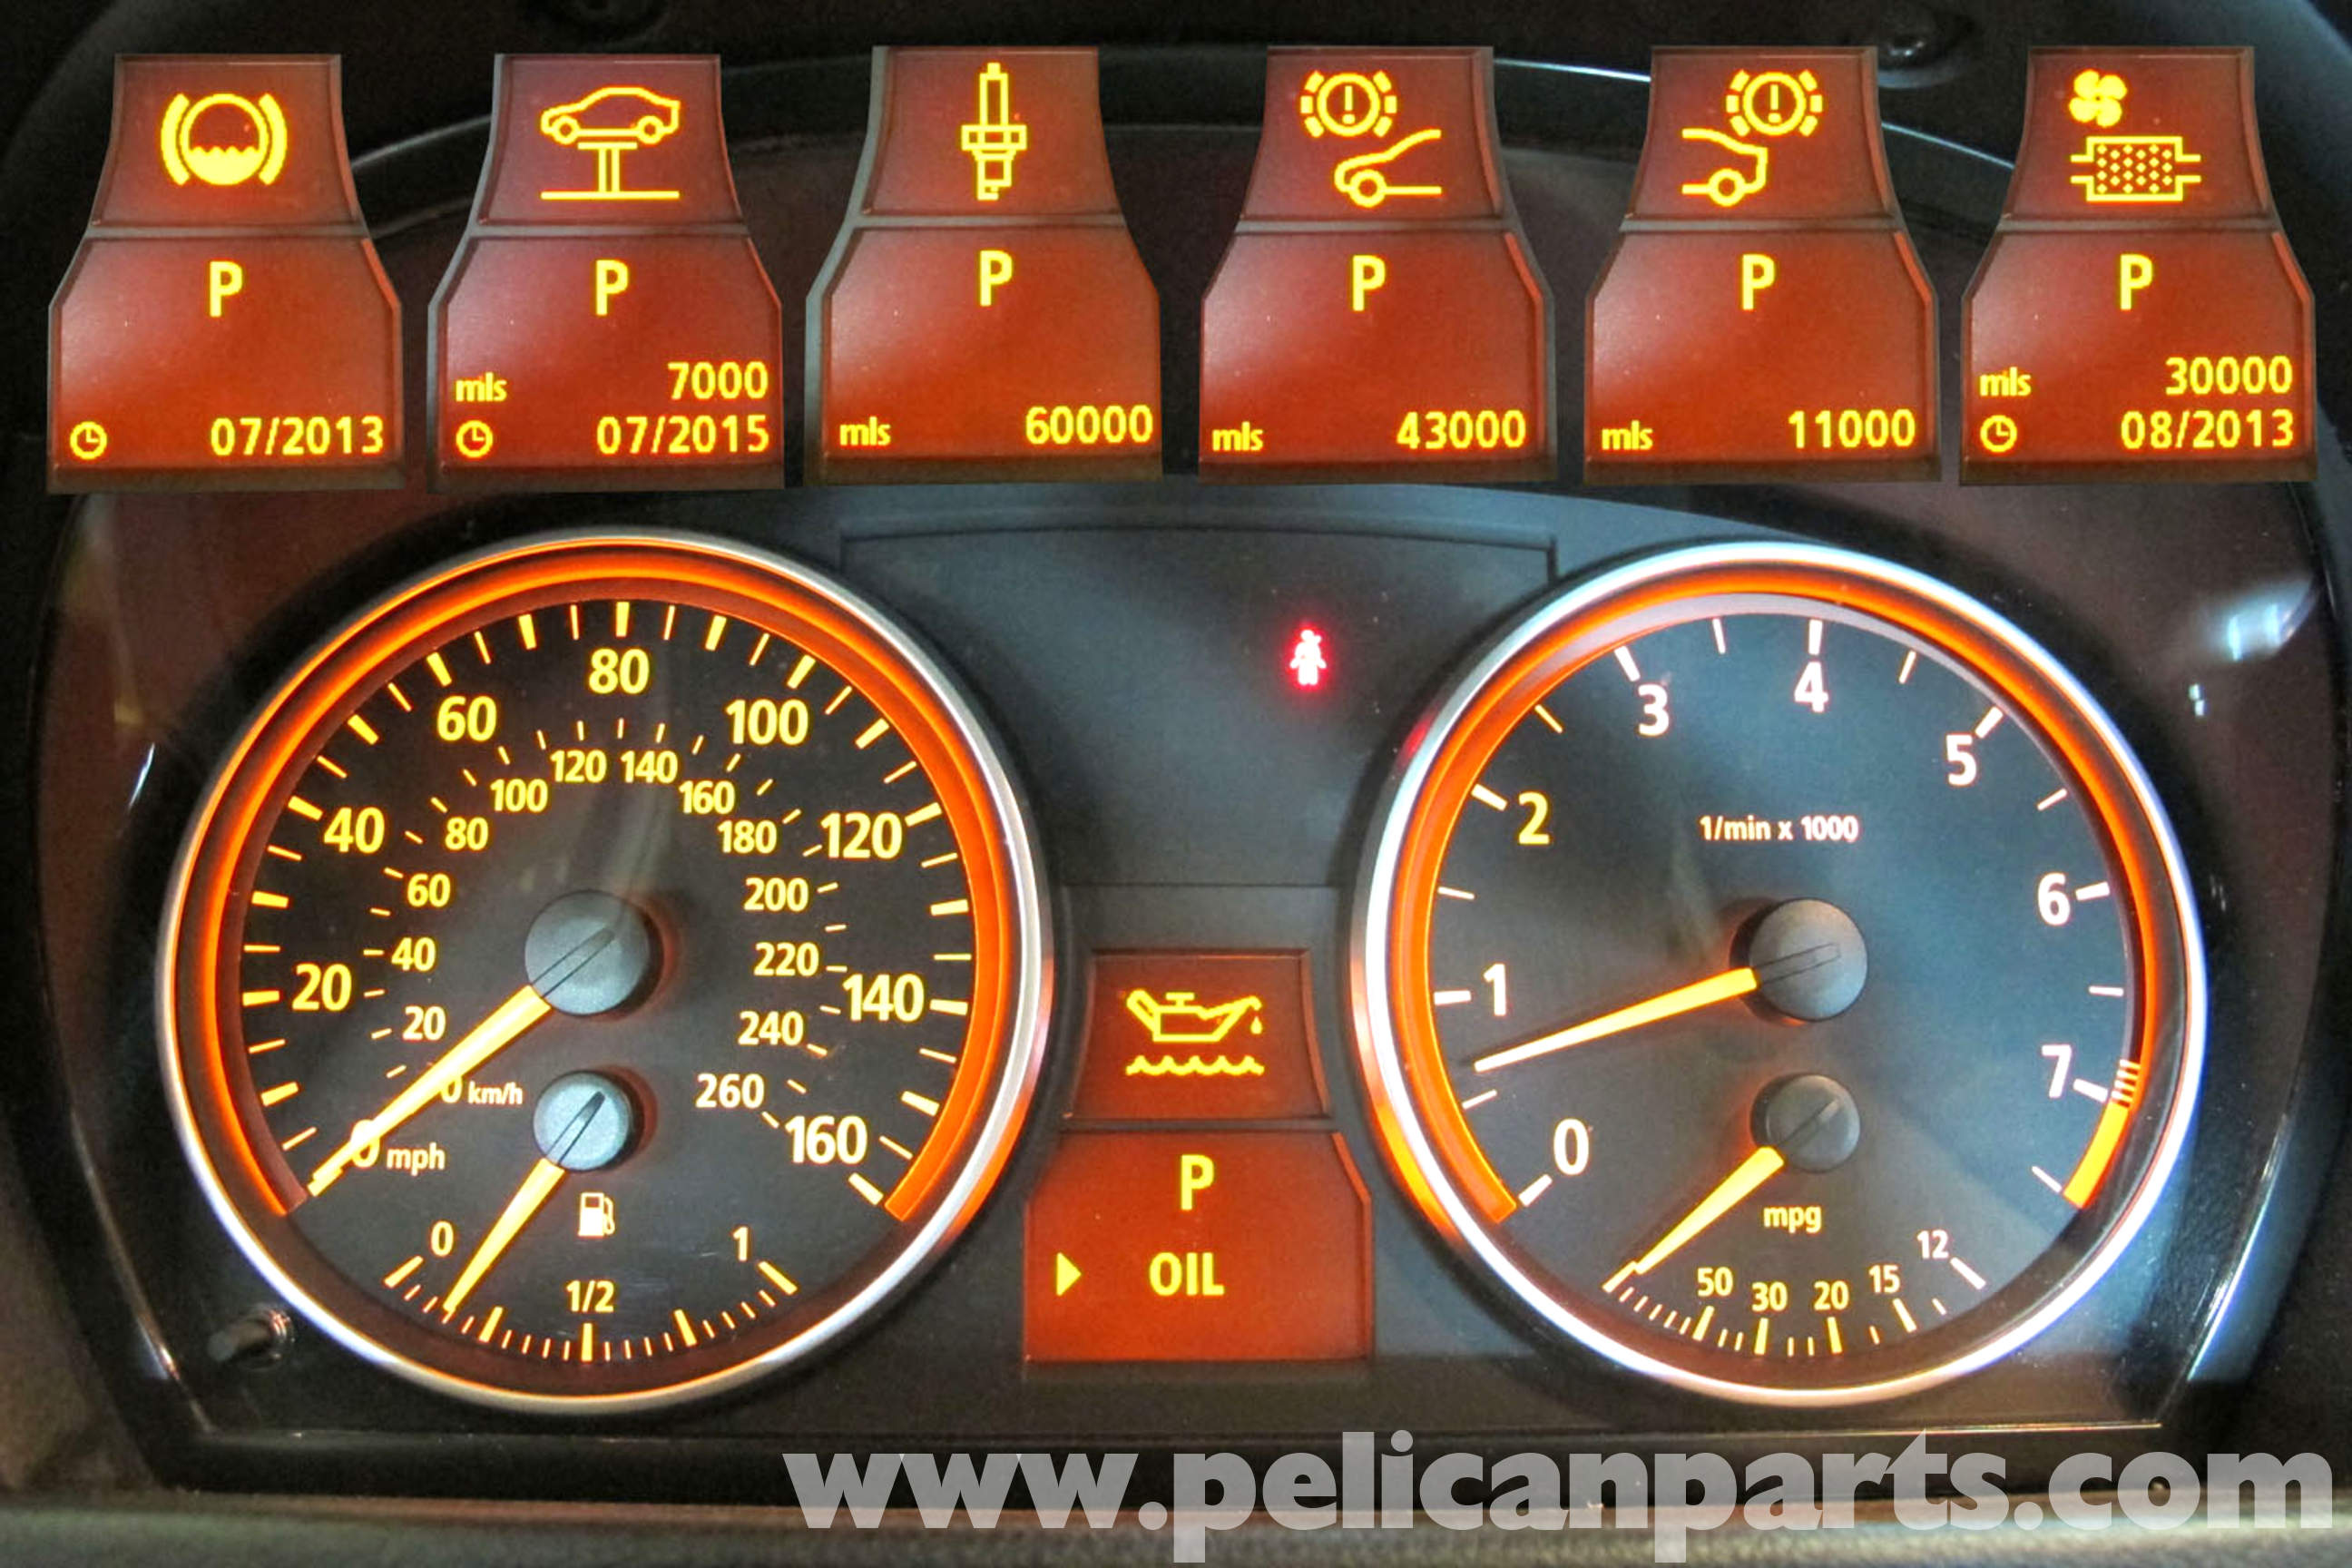 Bmw E90 Condition Based Service Explained E91 E92 E93 Pelican Parts Diy Maintenance Article